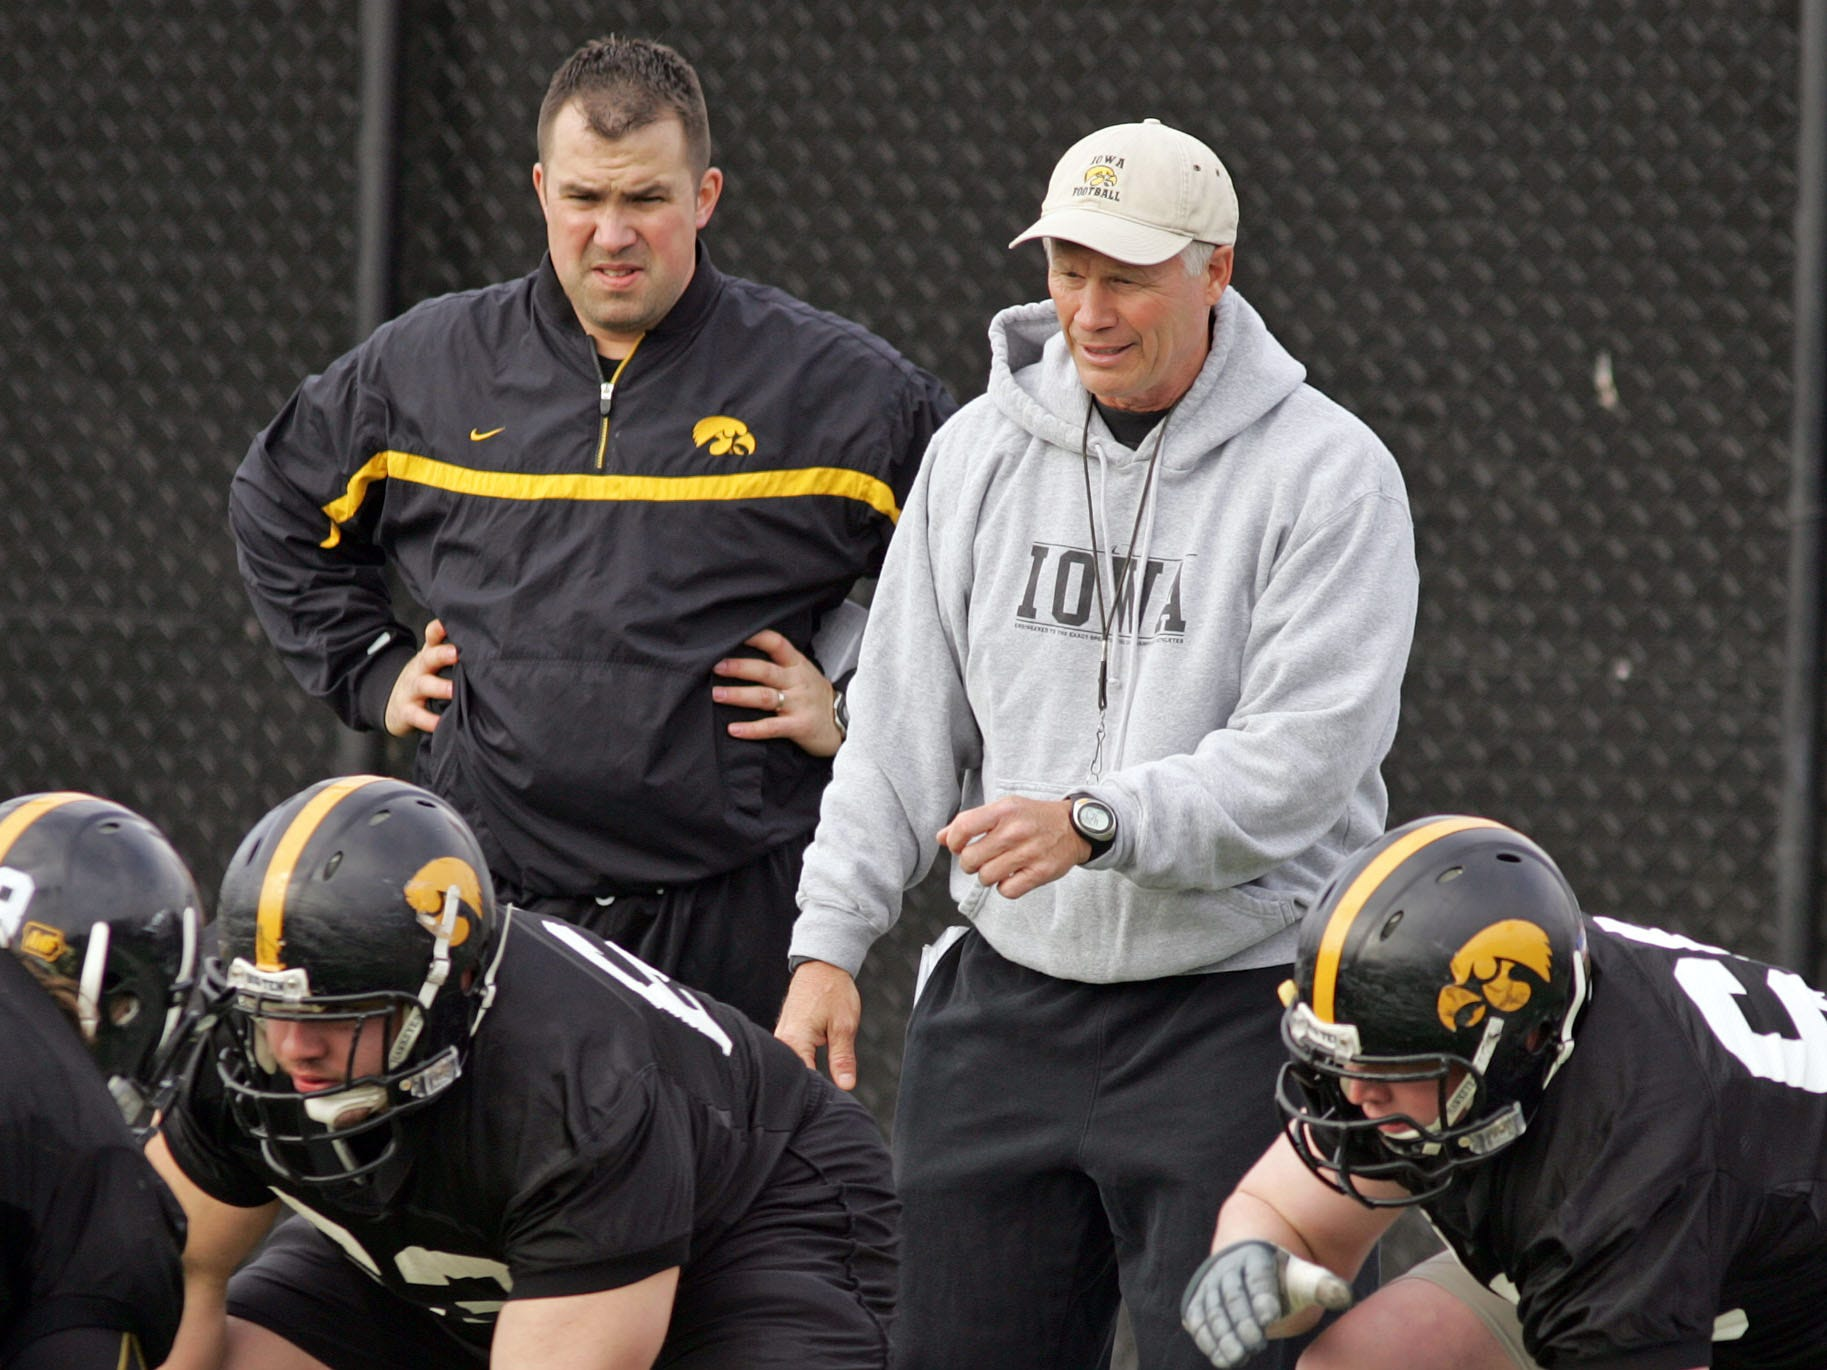 From 2008: Iowa graduate assistant Dan Clark, left, watches offensive line coach Reese Morgan direct a drill during practice.